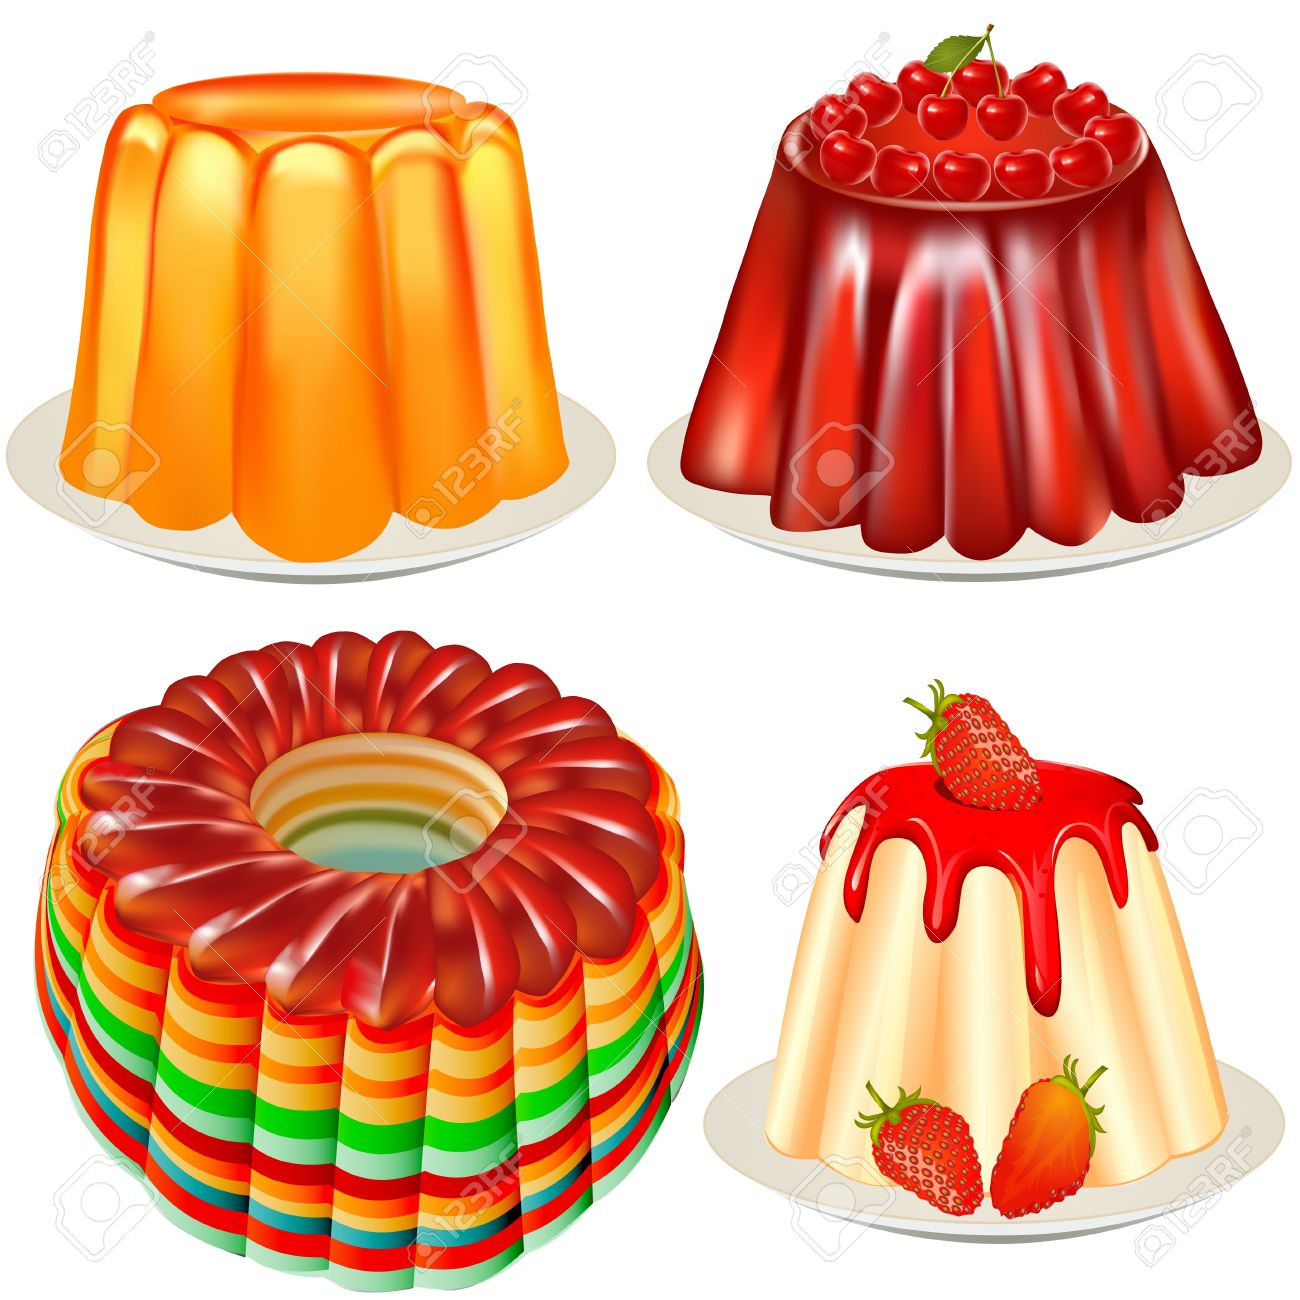 Illustration Kit Bright Festive Dessert Jelly With Cherry Royalty.